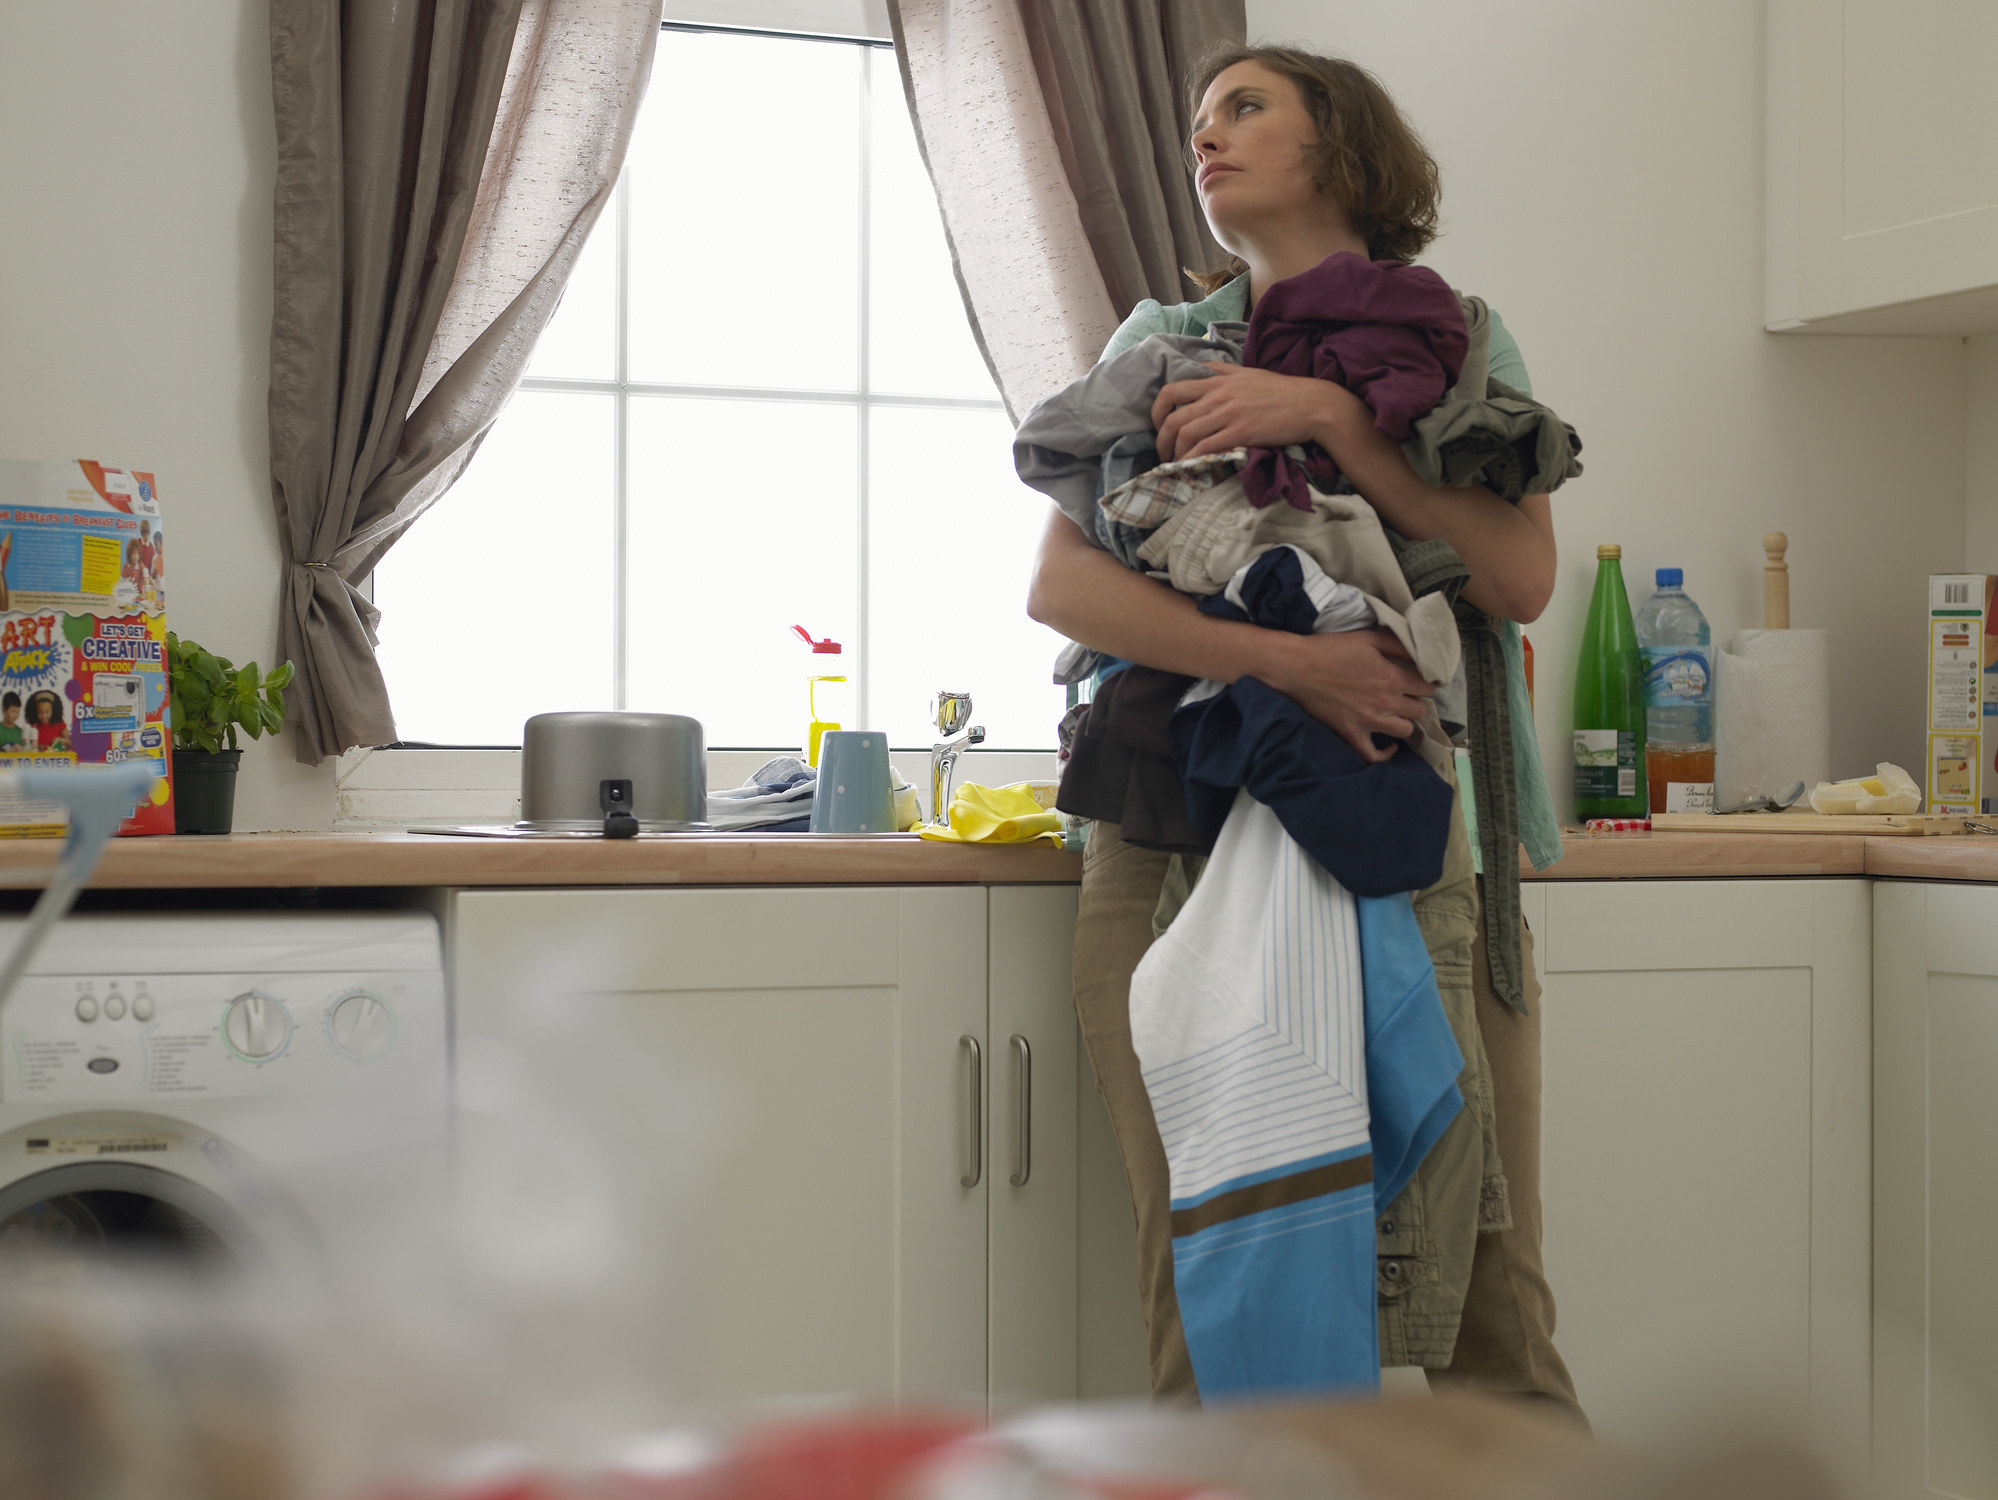 A woman holding a pile of laundry